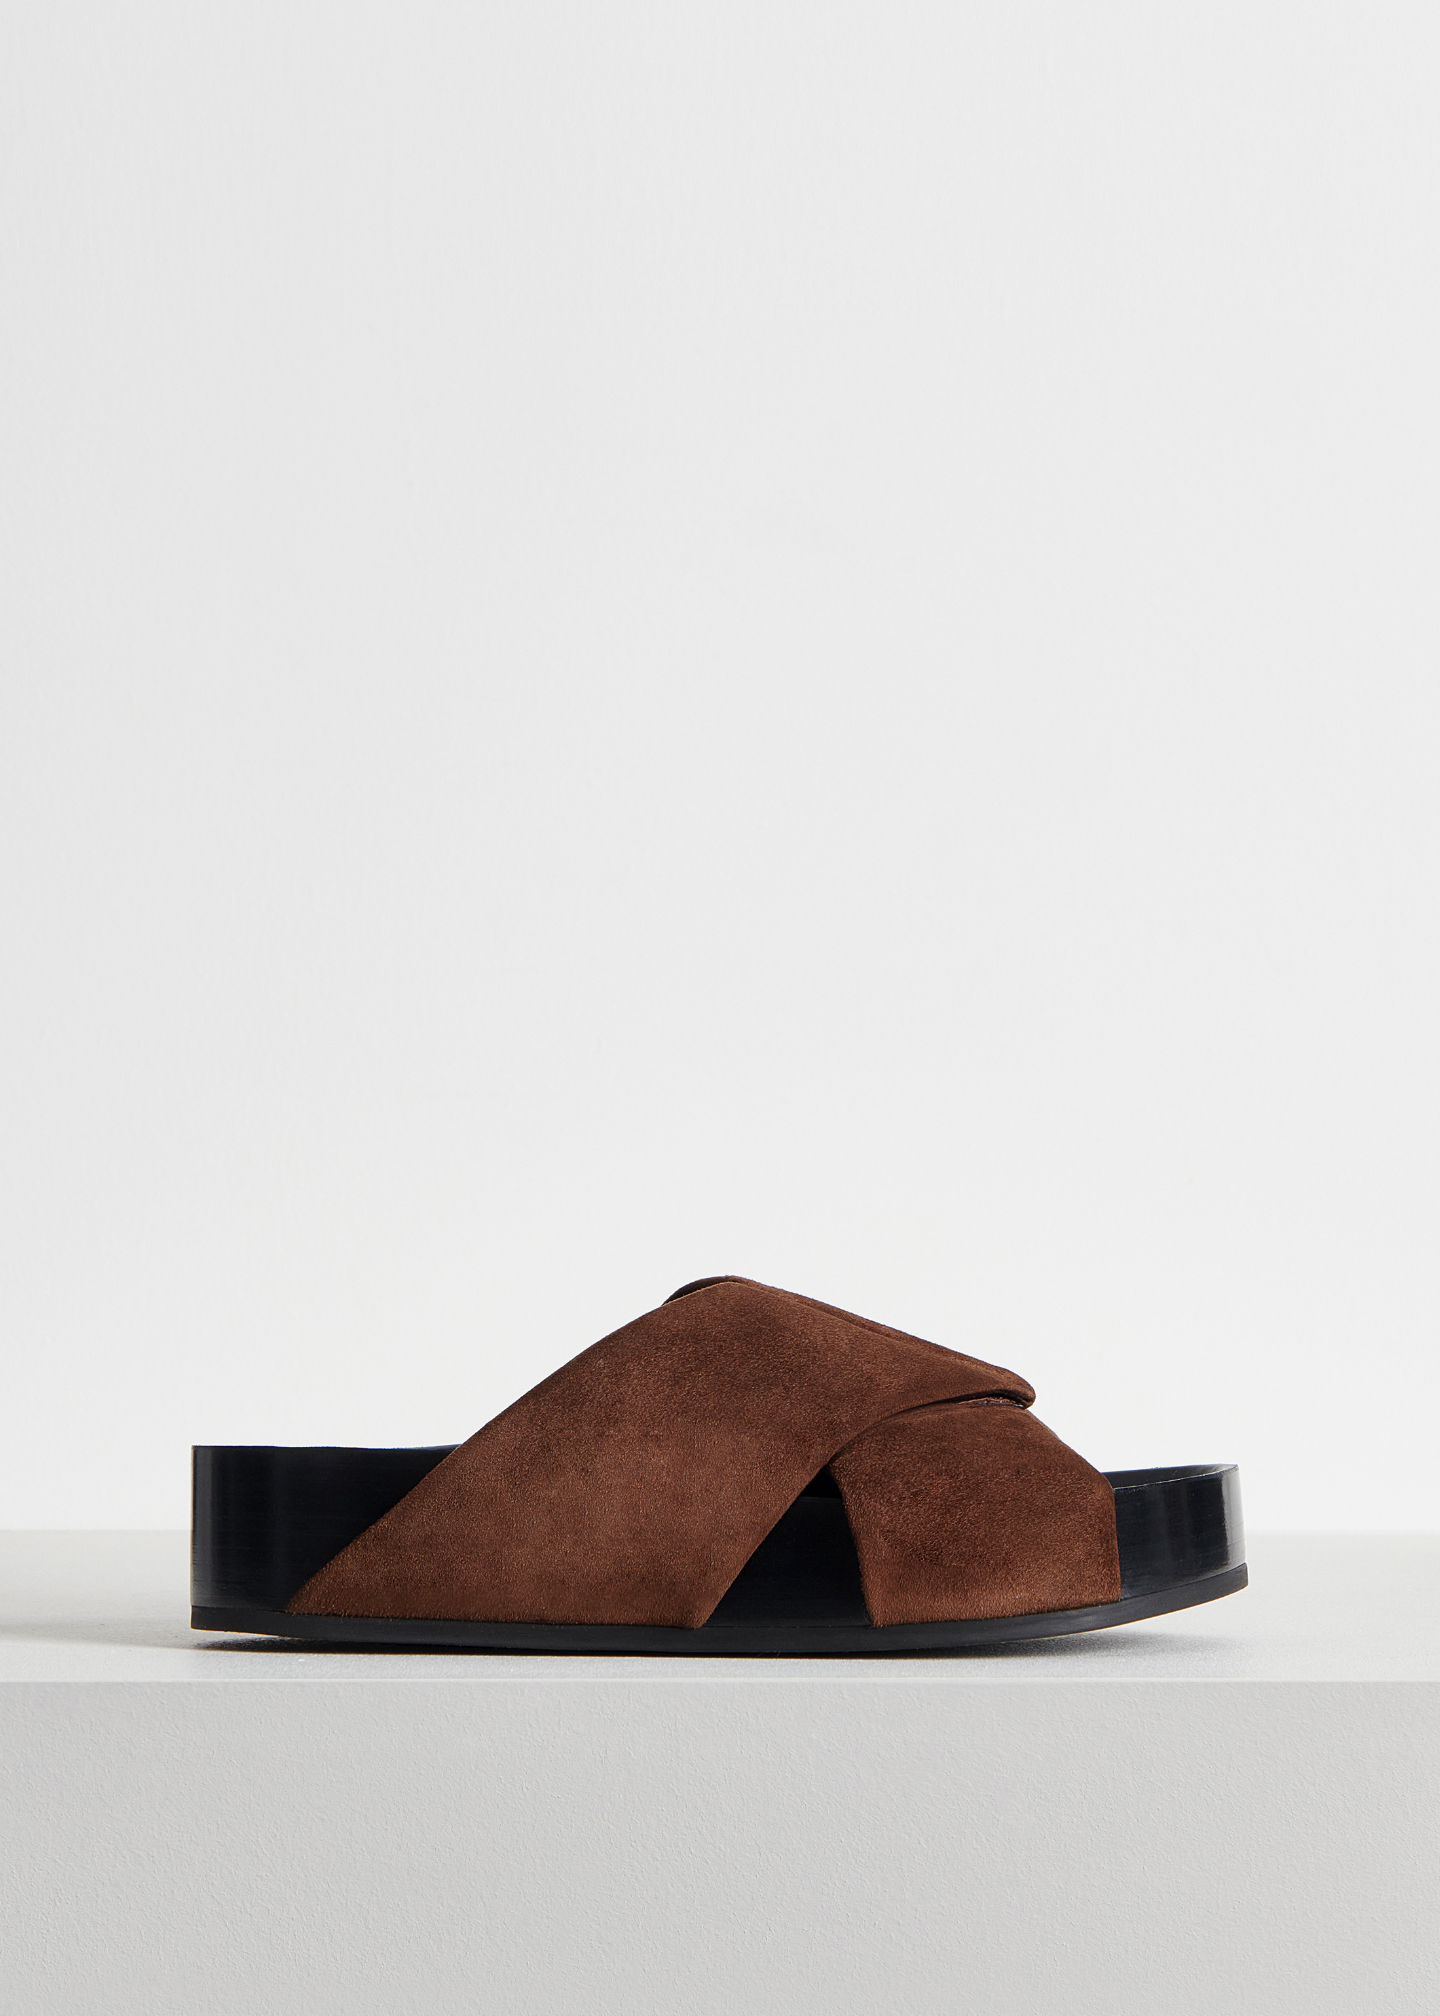 Slide Sandal in Suede - Sand in Dark Brown by Co Collections